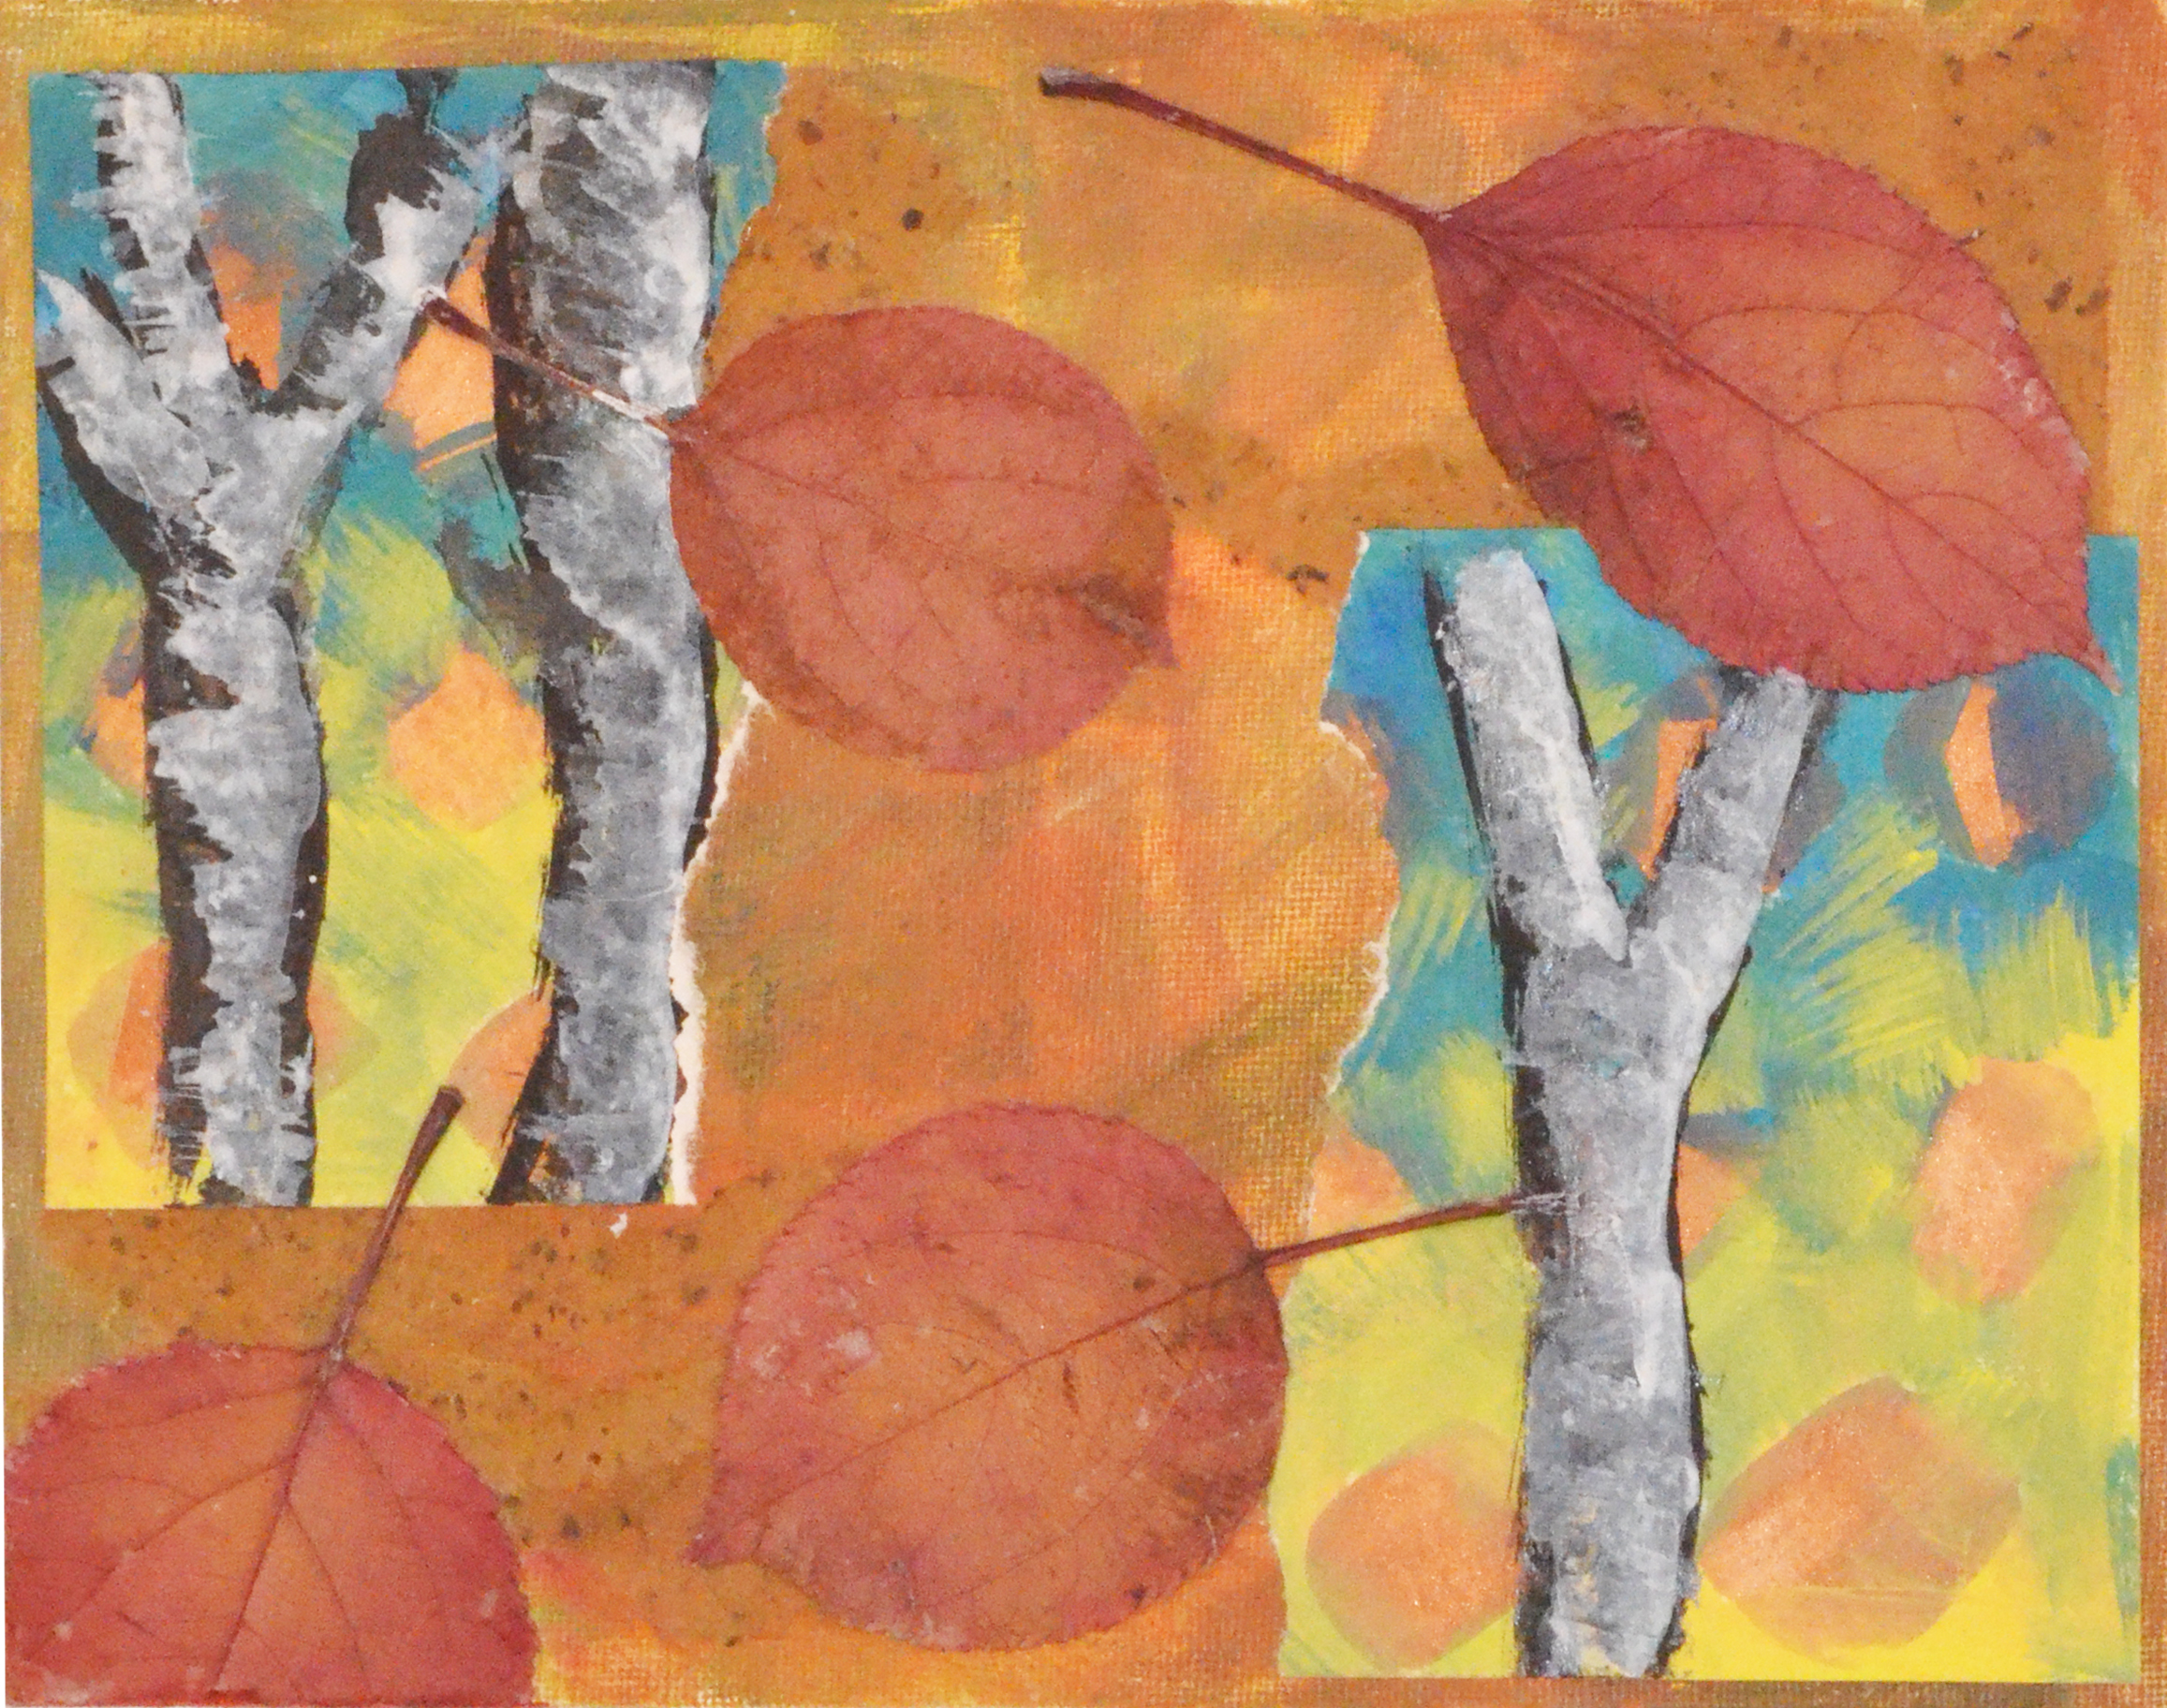 An original painting of birch trees.